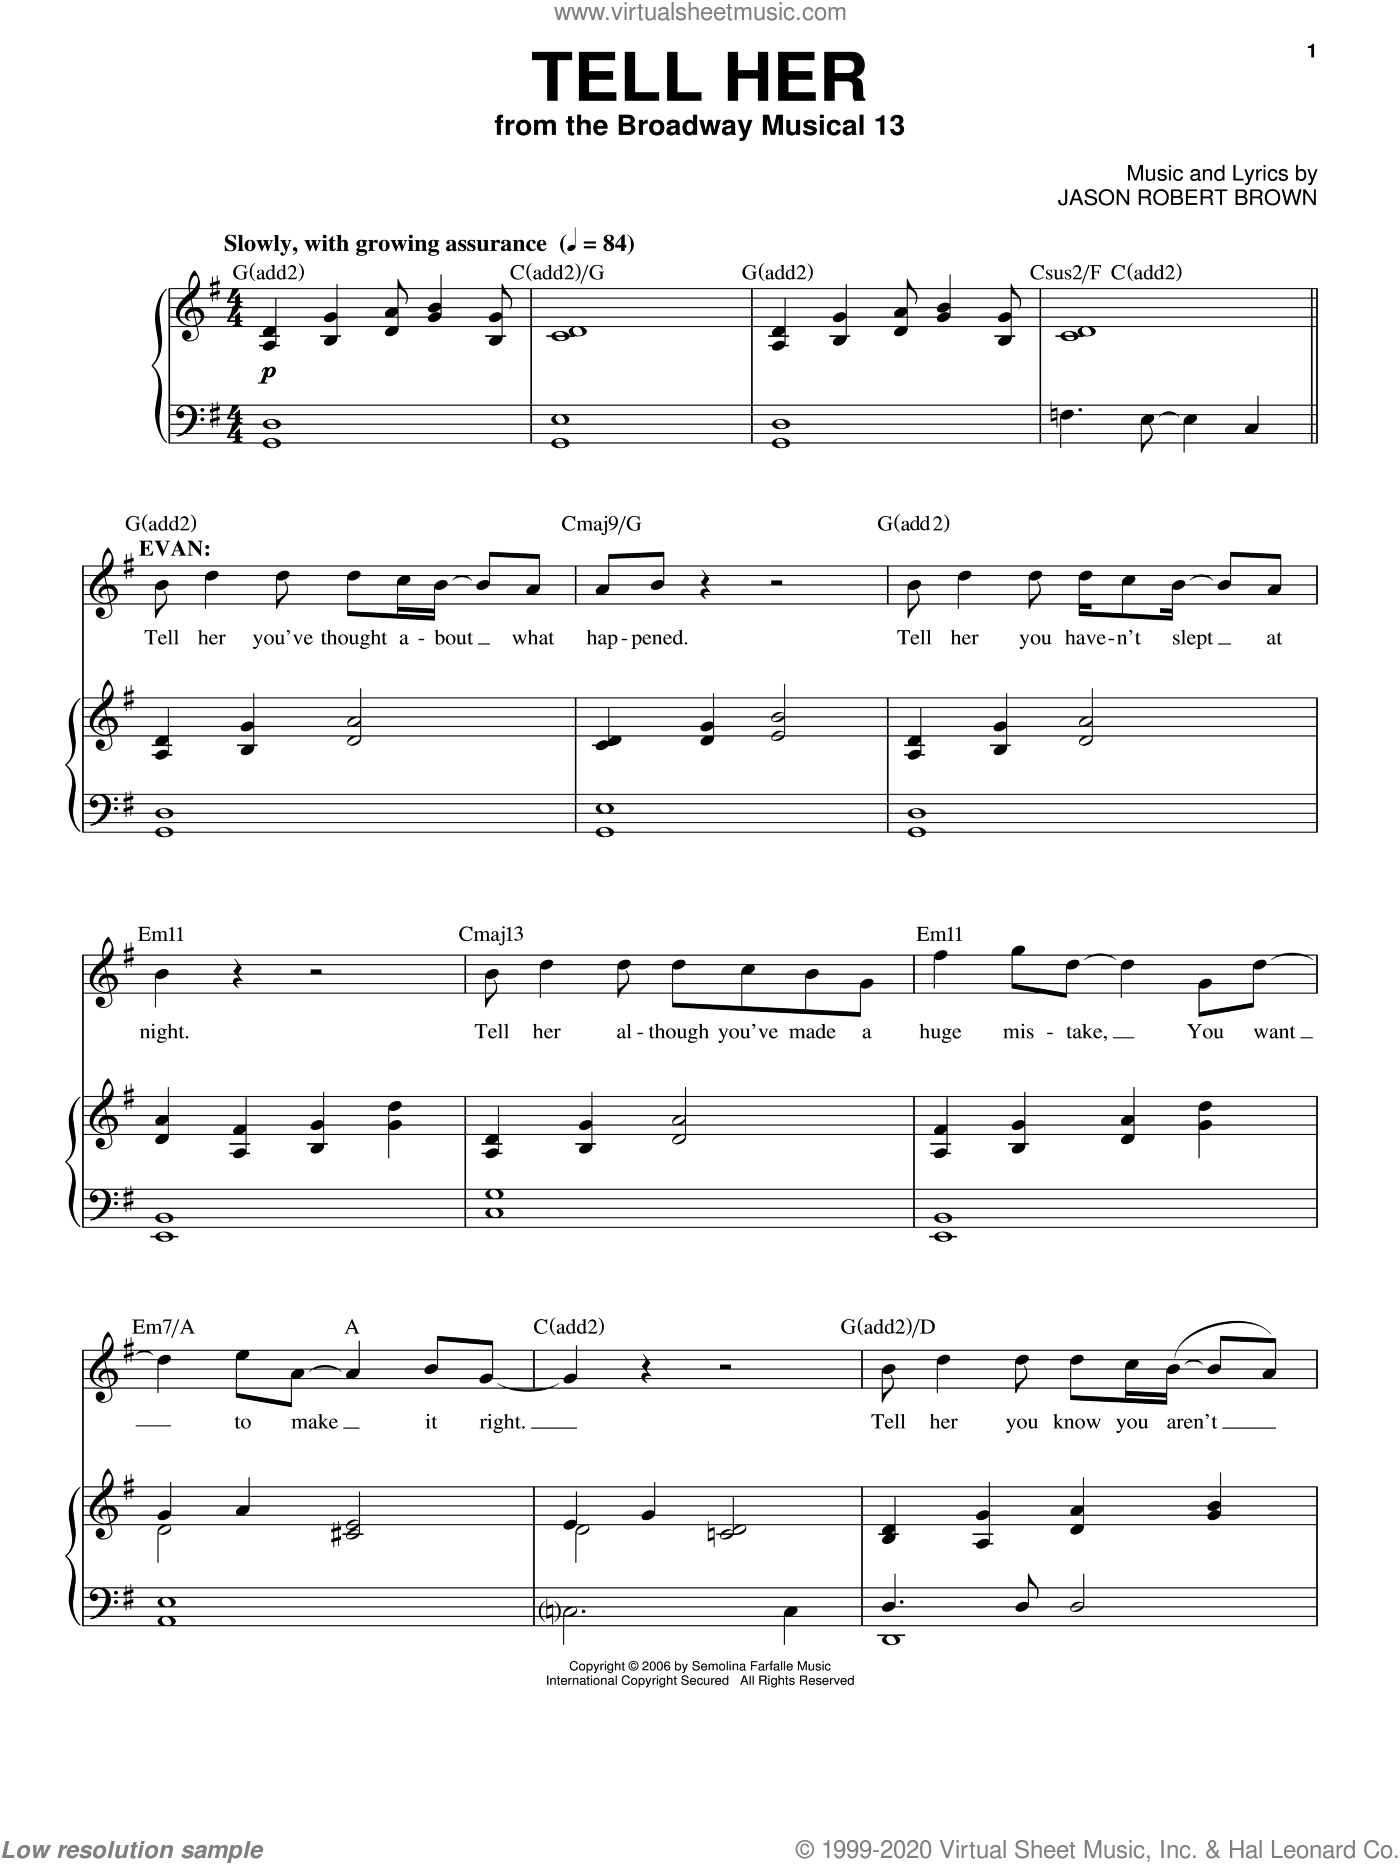 Tell Her sheet music for voice and piano by Jason Robert Brown and 13: The Musical, intermediate